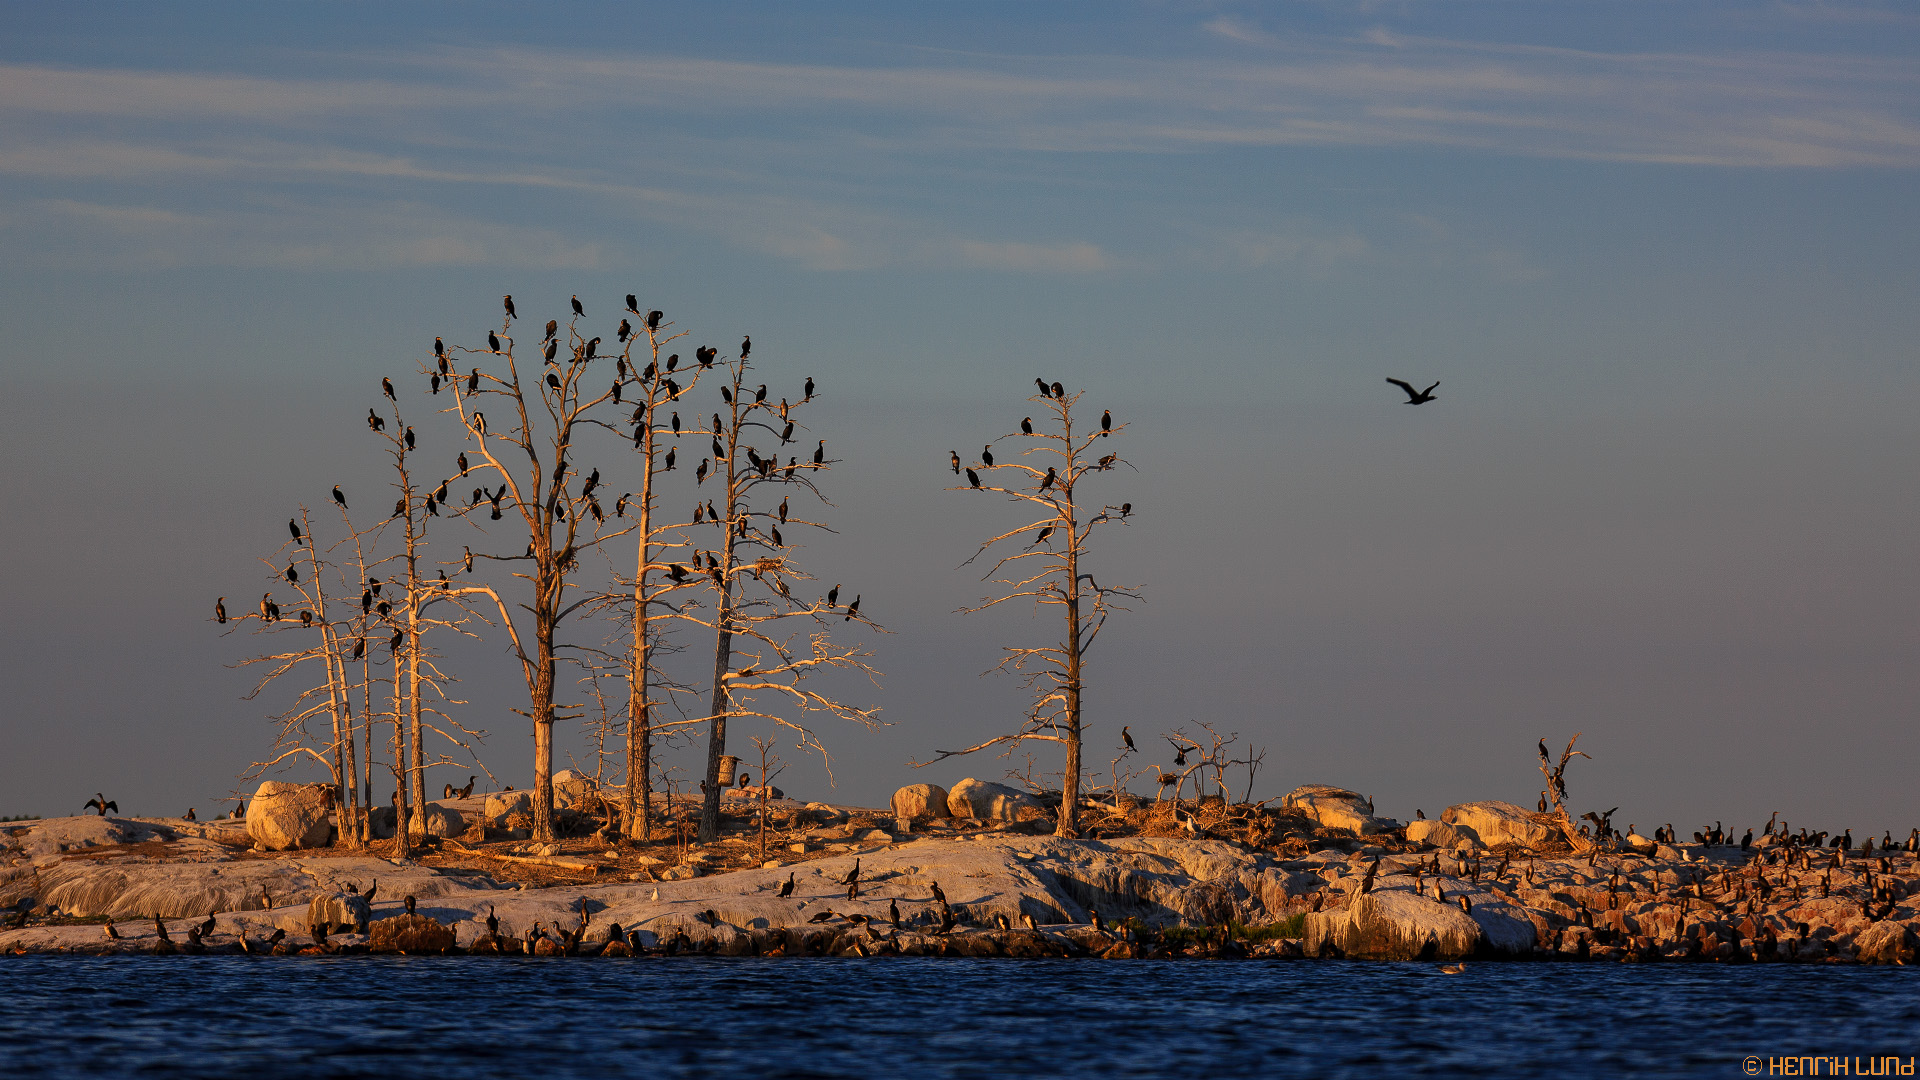 An totally polluted island by great cormorants in the Porvoo archipelago, Finland, August 2013.